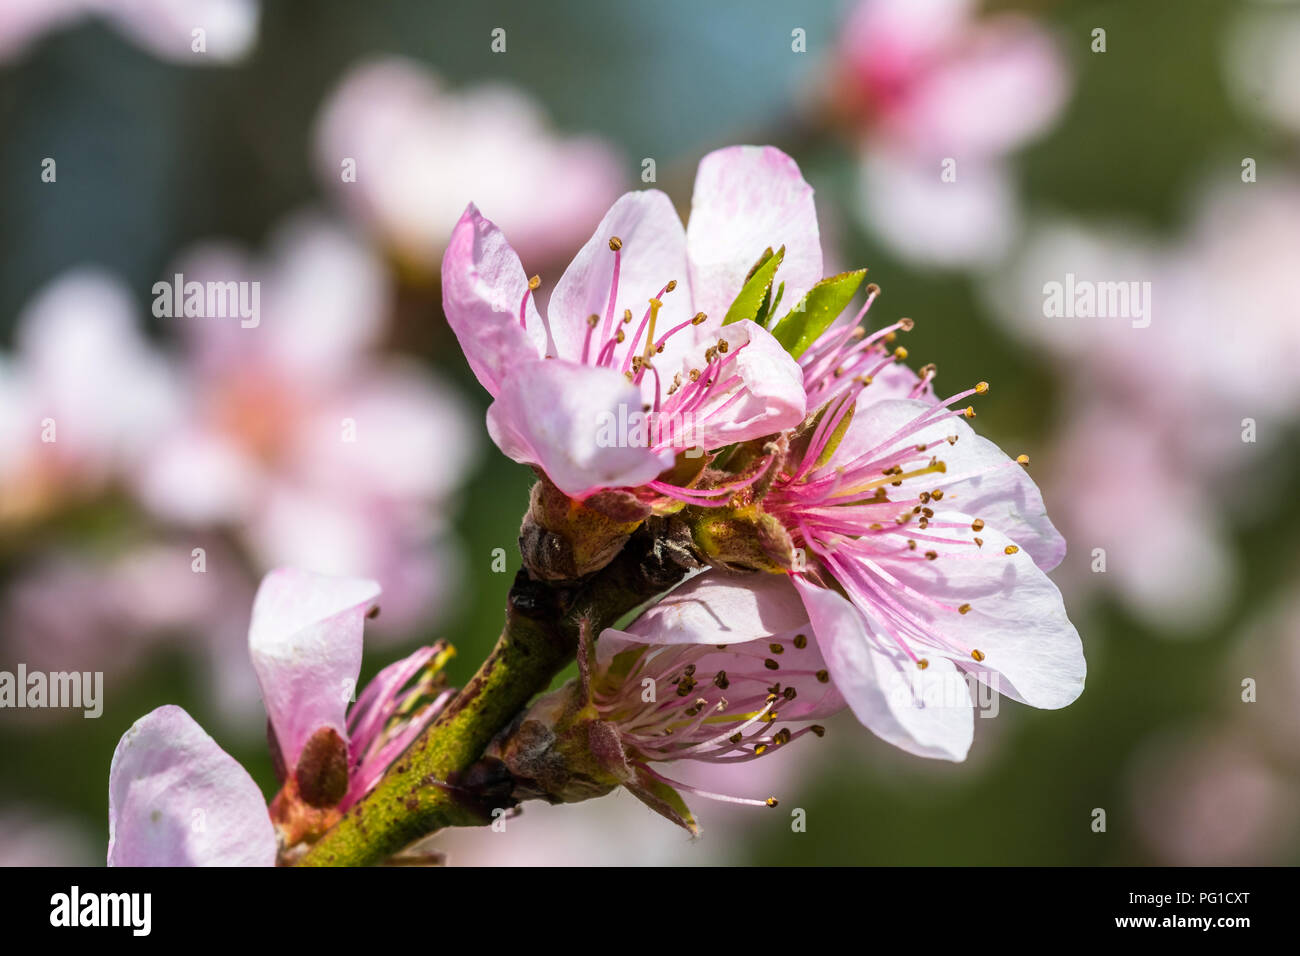 Nice pink flowers stock photos nice pink flowers stock images alamy detail of a beautiful blooming tree in a spring nice pink flowers macro shot mightylinksfo